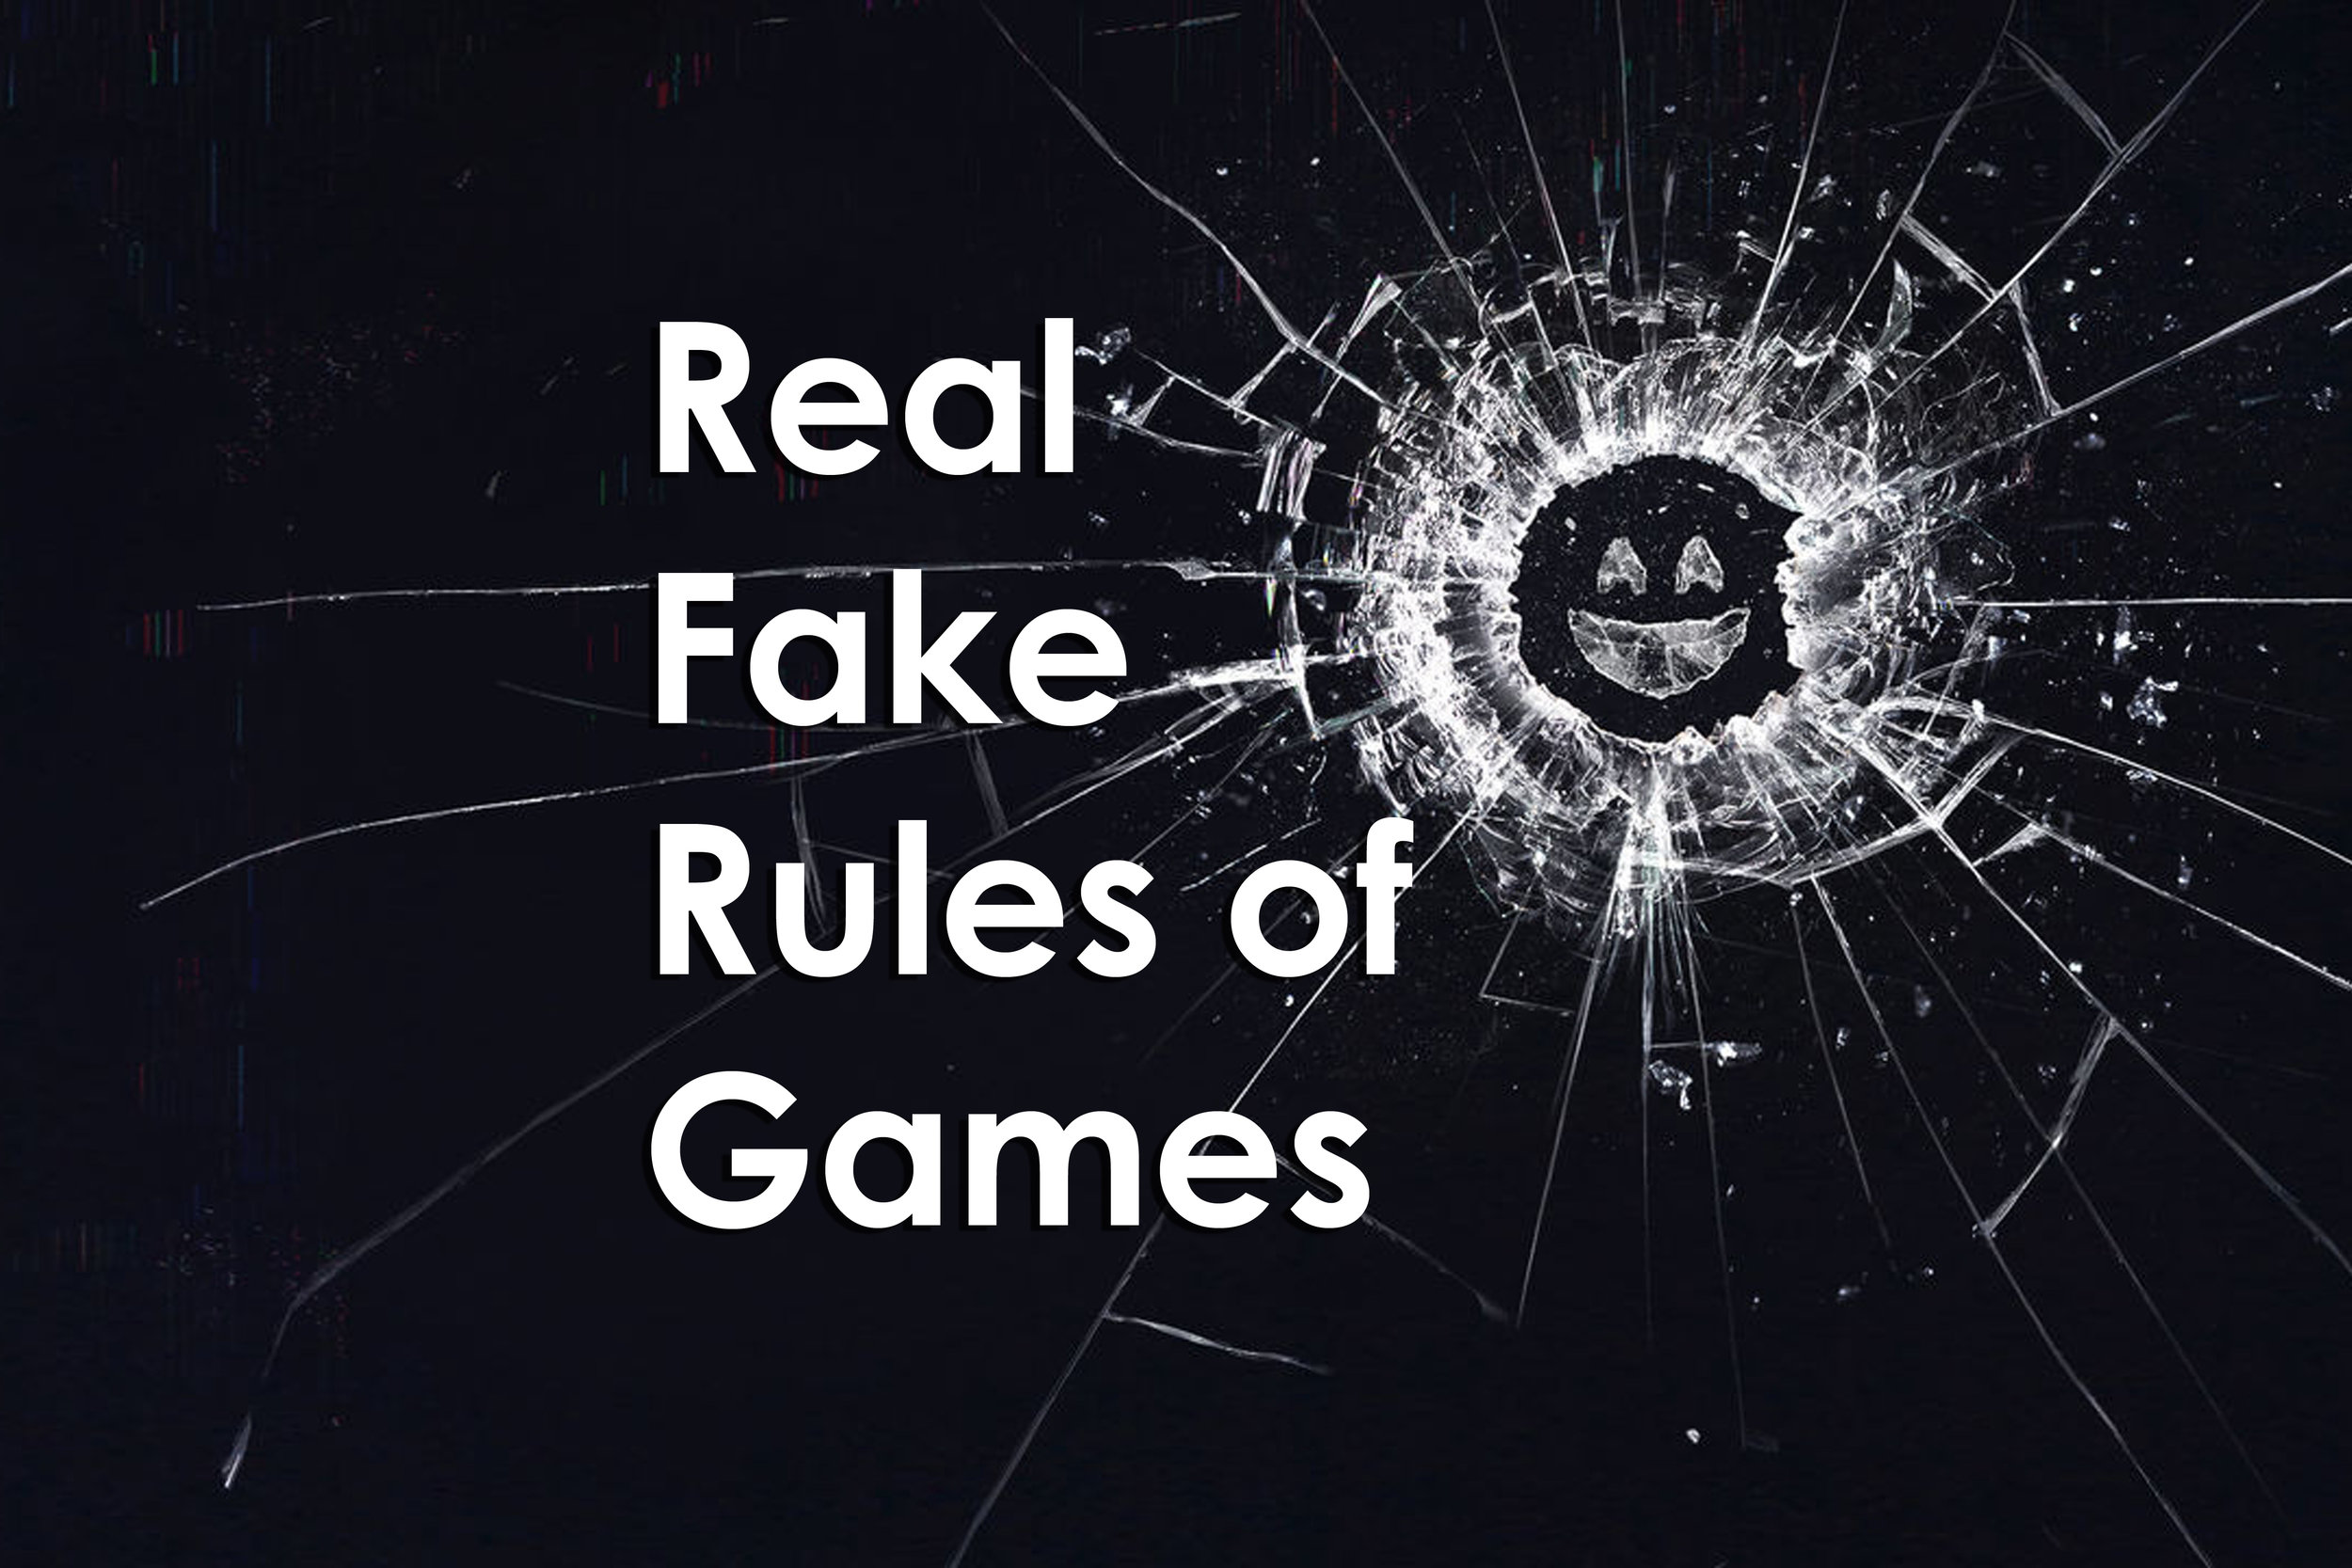 Real Fake Rules of Games